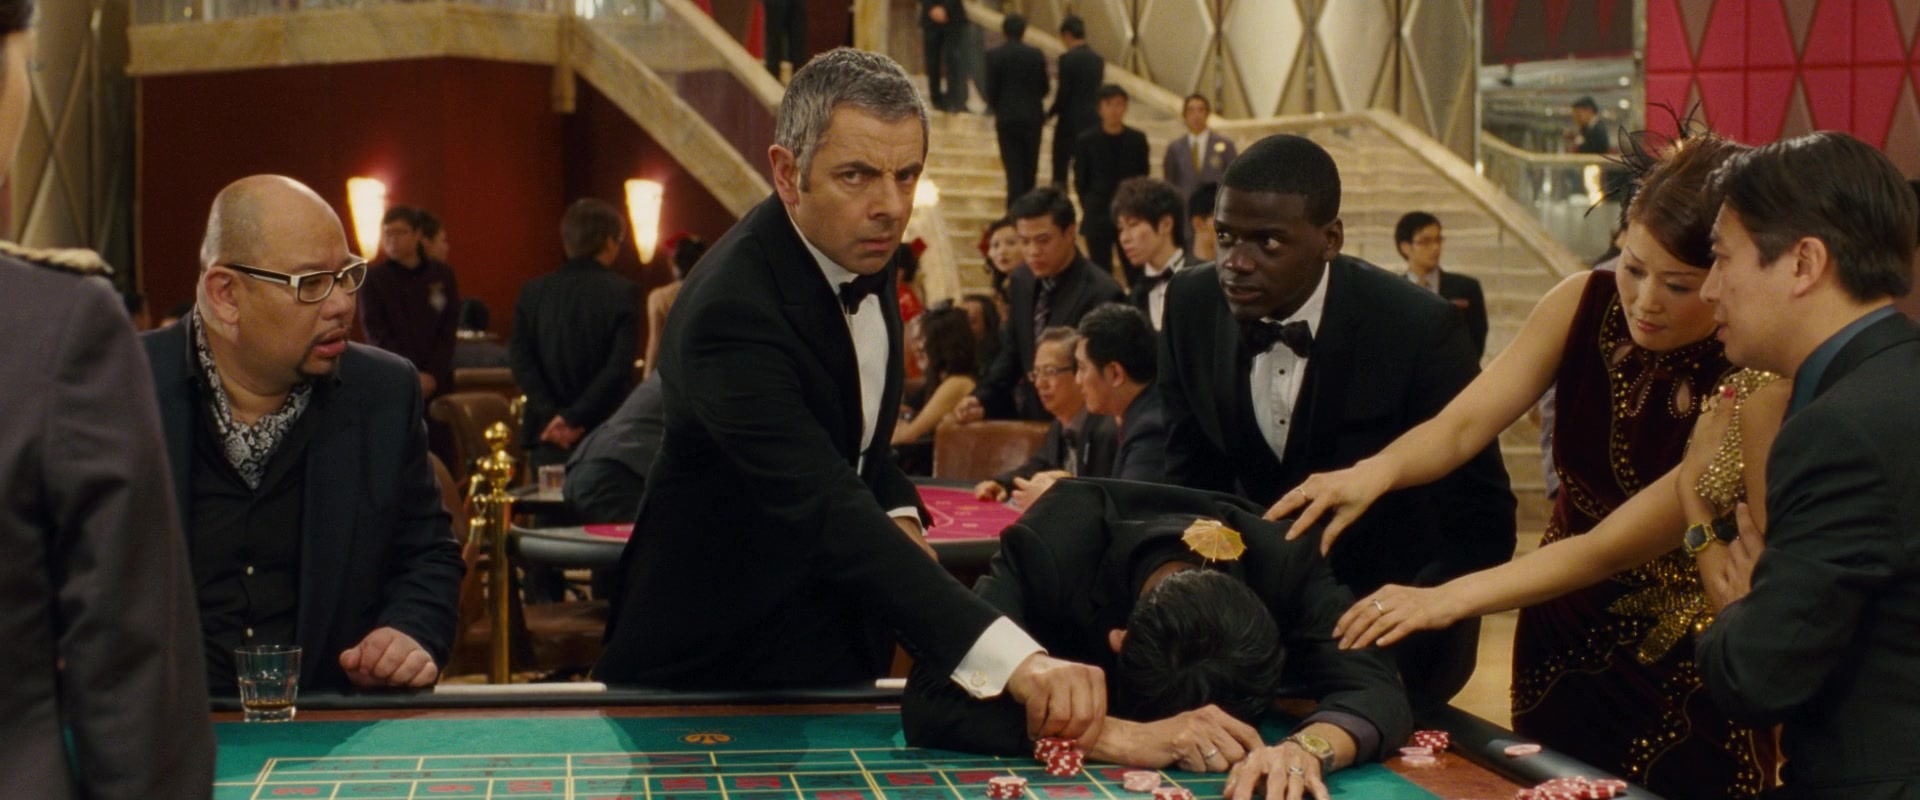 Image result for english casino